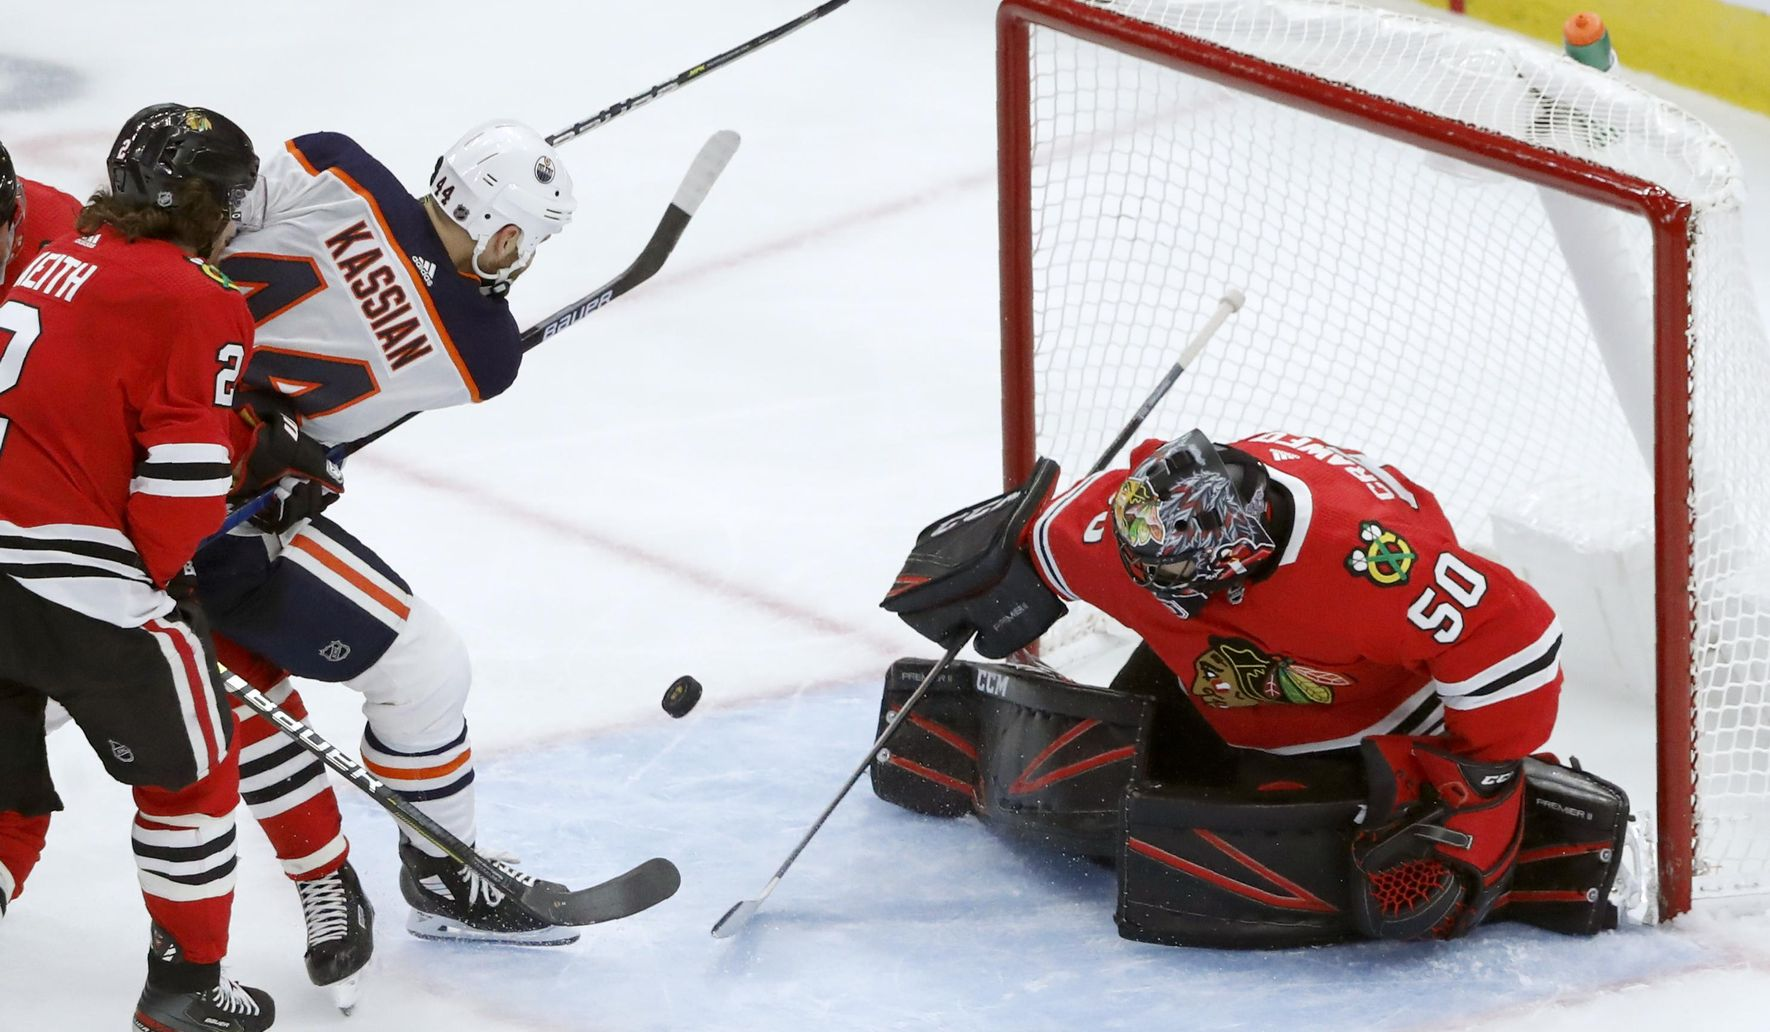 Oilers_blackhawks_hockey_41343_c0-124-2968-1854_s1770x1032